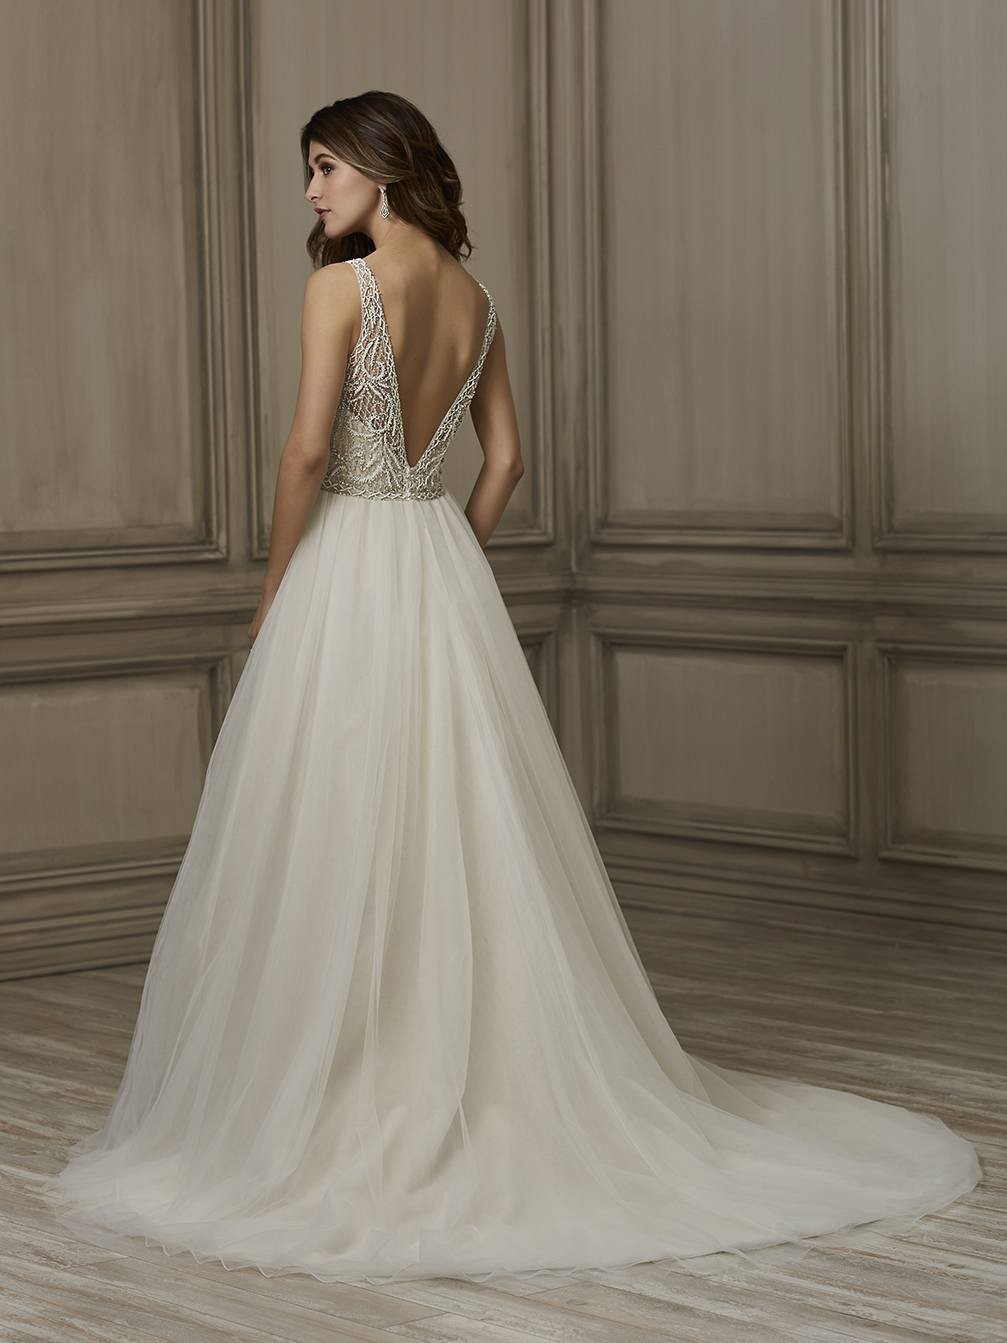 4bc3825fe81 Adrianna Papell - Dress Style Brooke Adrianna Papell - Dress Style Brooke  ...